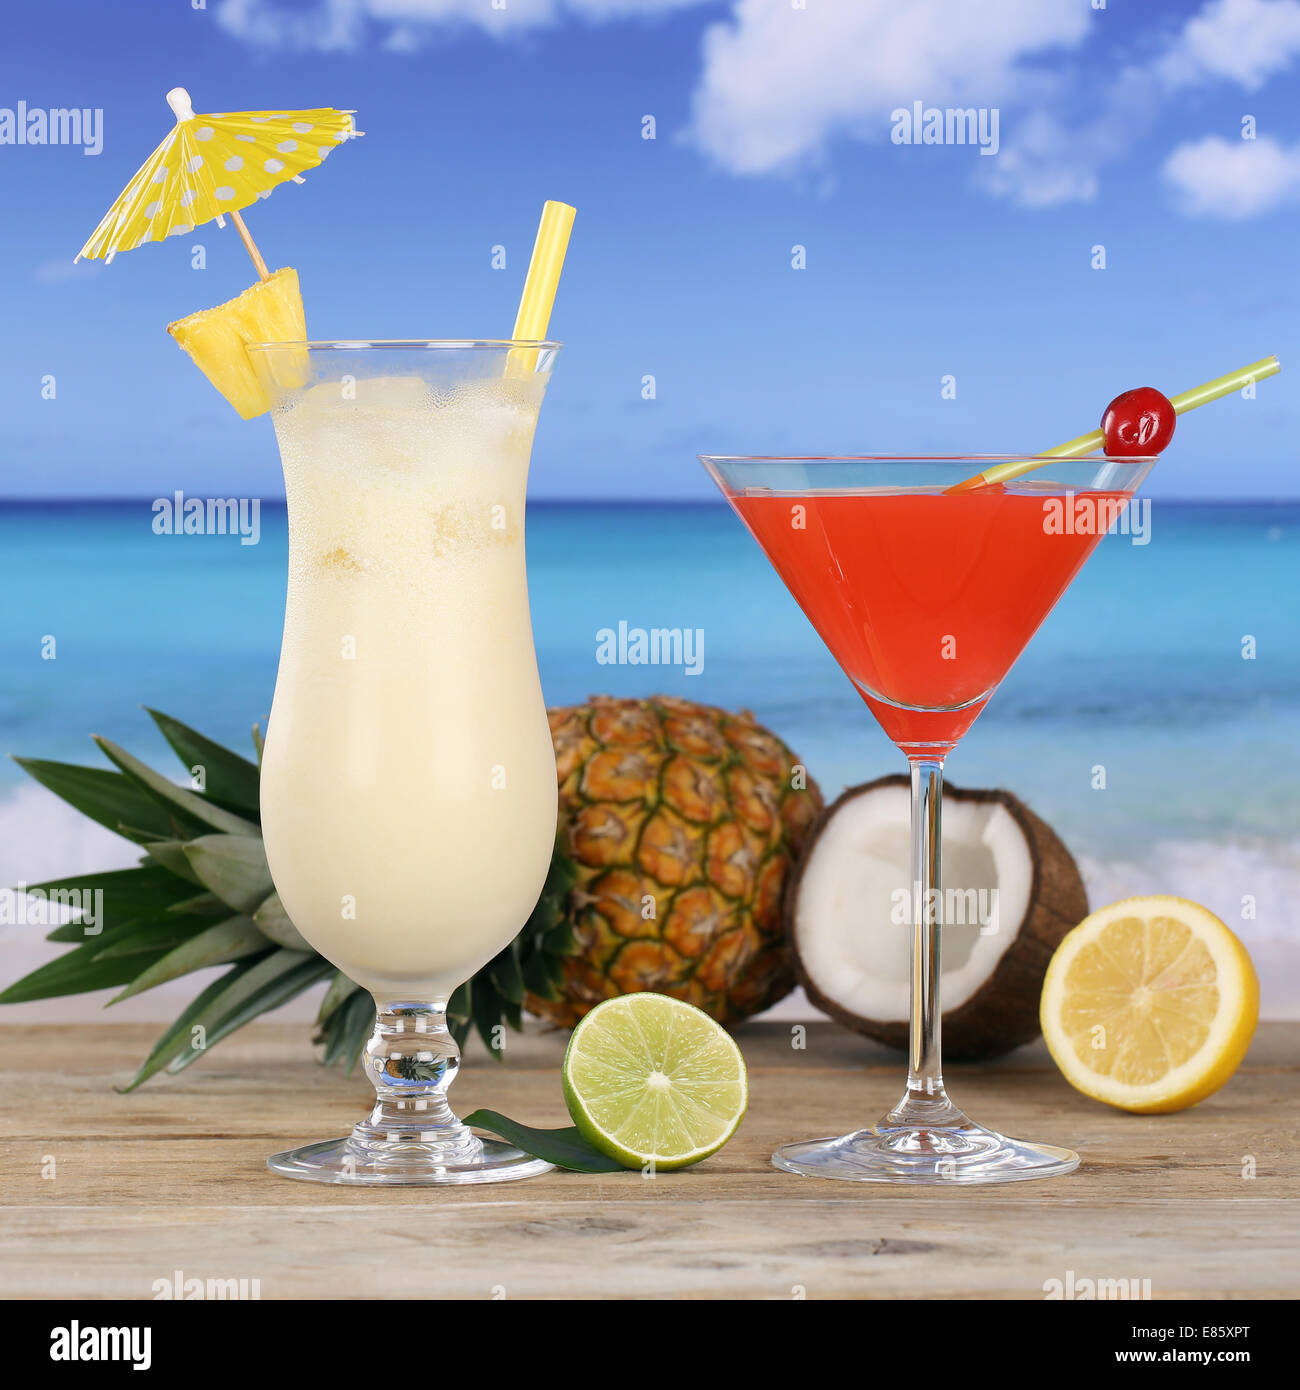 Cocktails and alcohol drinks like Pina Colada and Martini on the beach - Stock Image